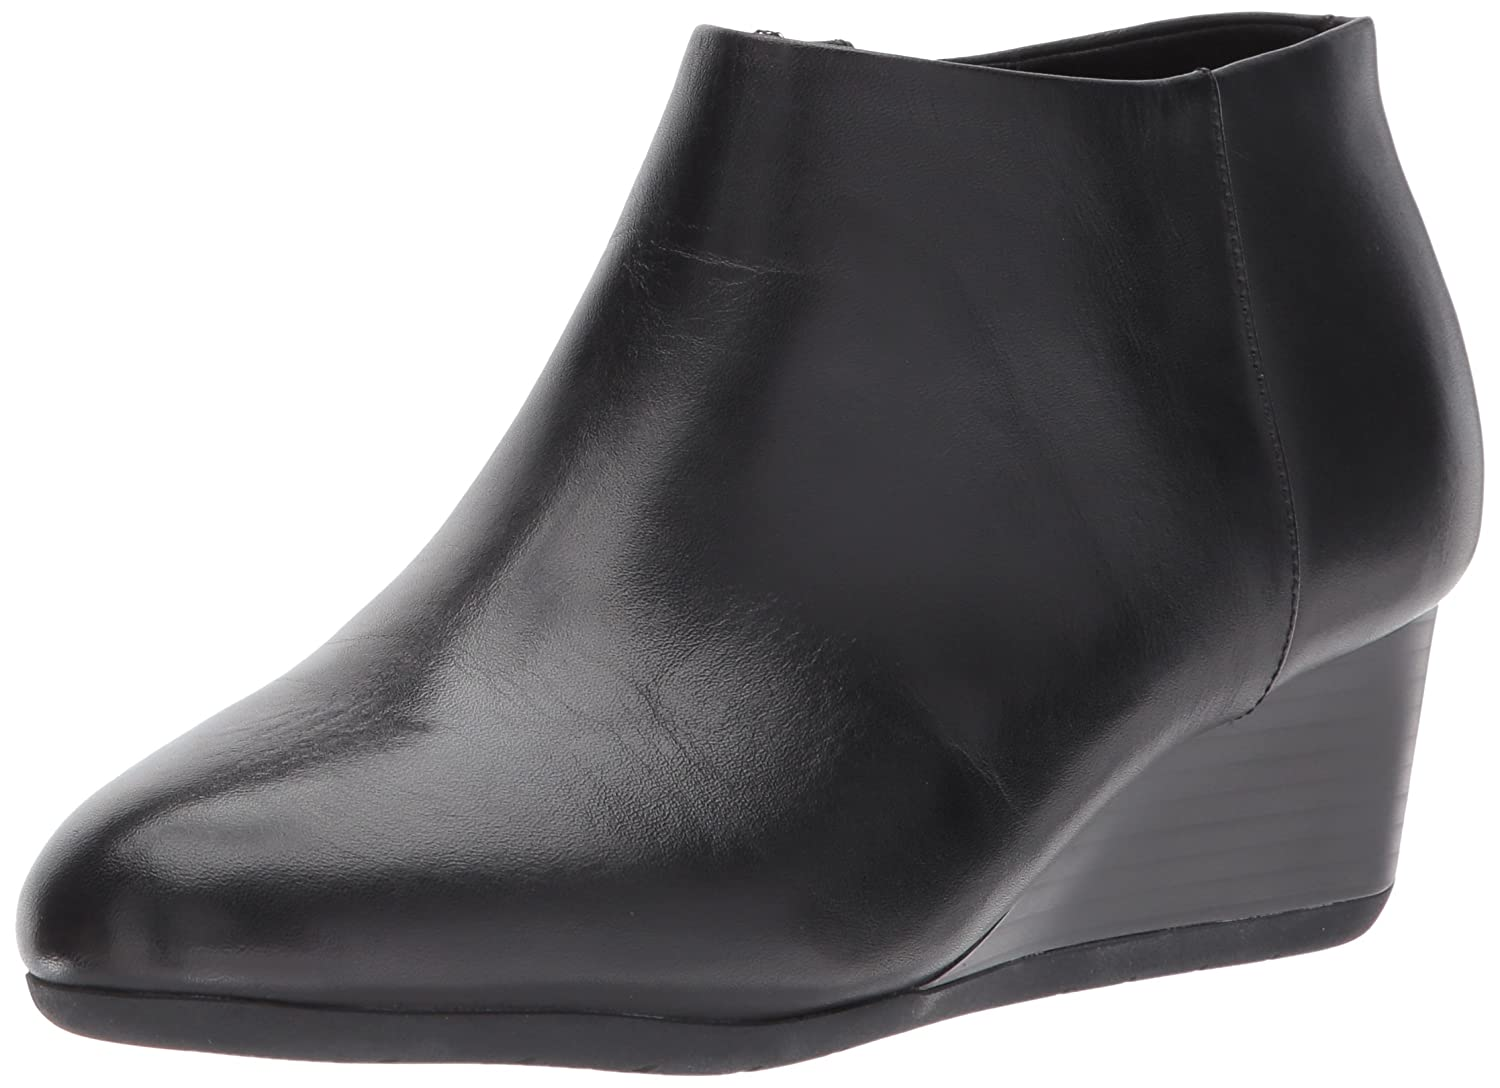 Easy Spirit Women's Leinee Ankle Bootie B06Y3VKQGV 10 B(M) US|Black Leather